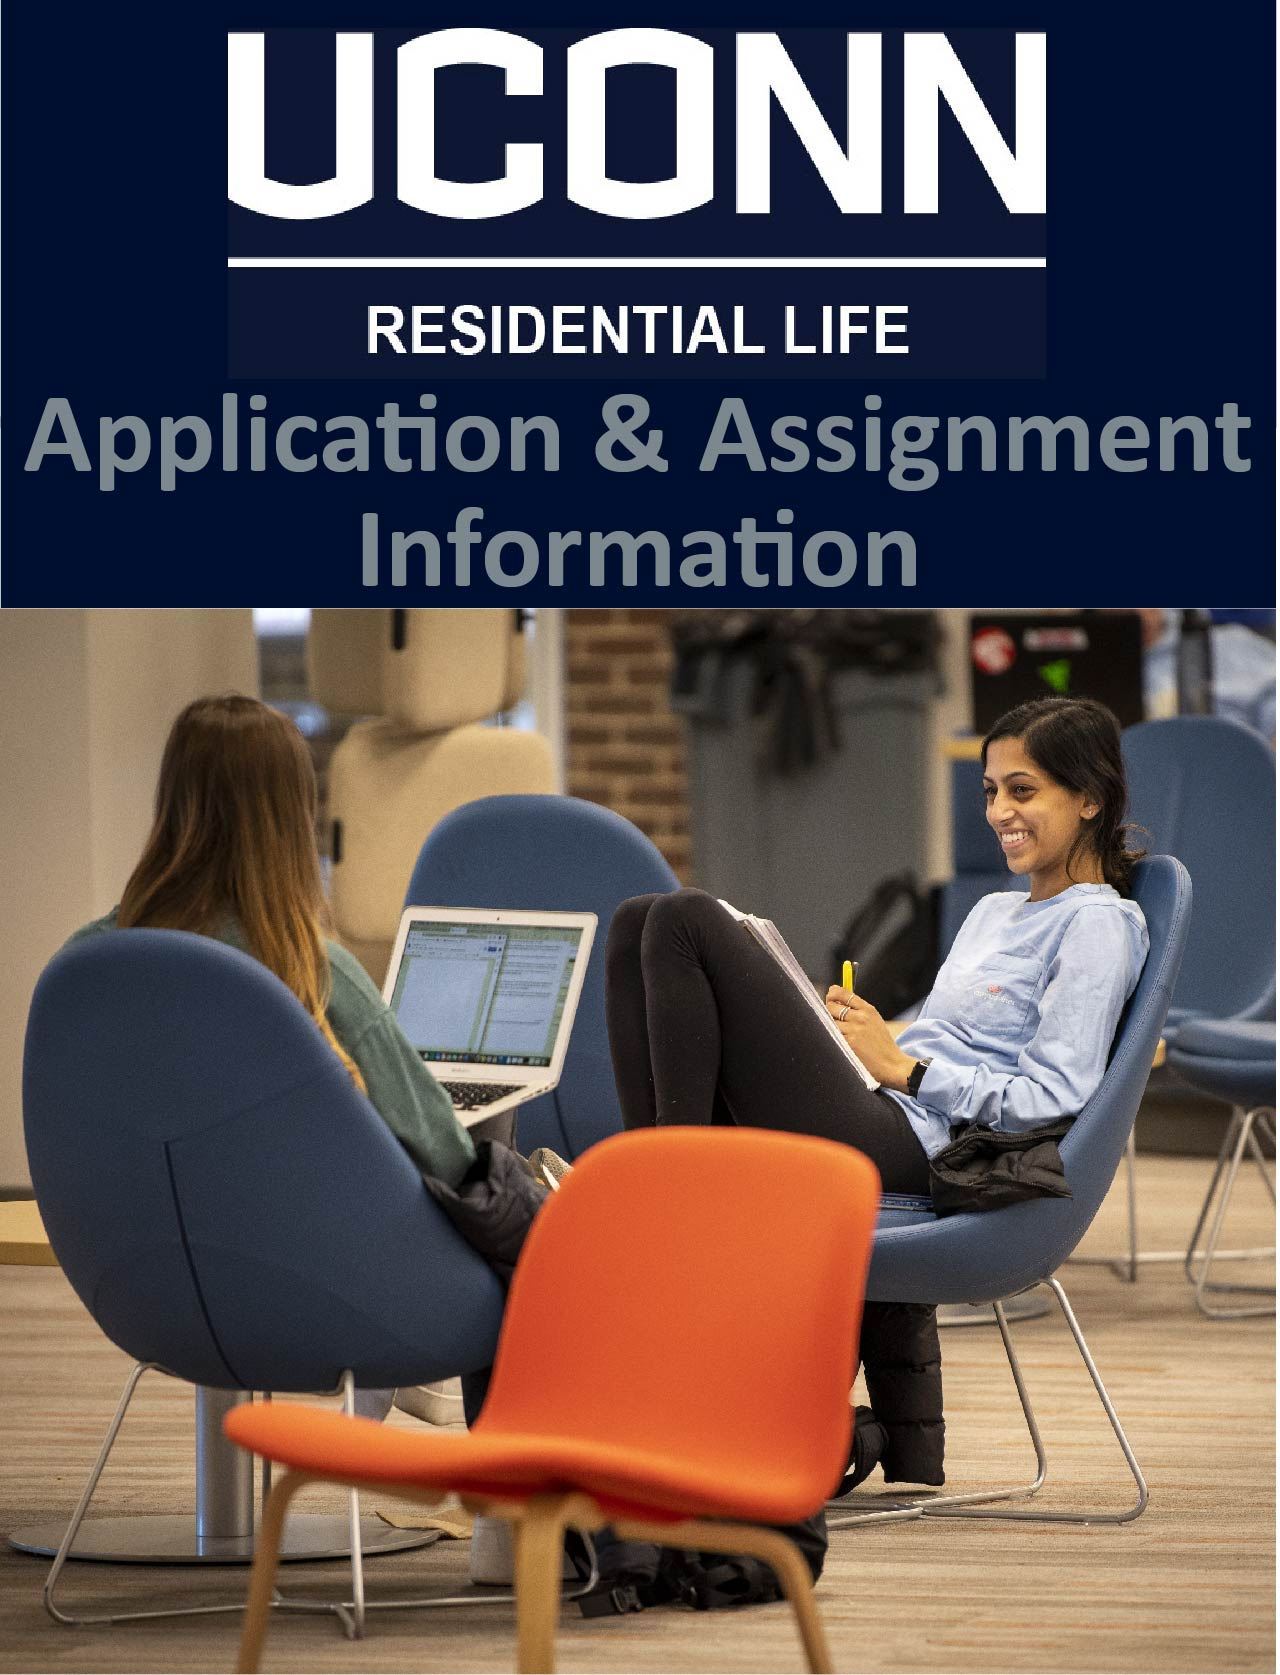 Application and Assignment Information